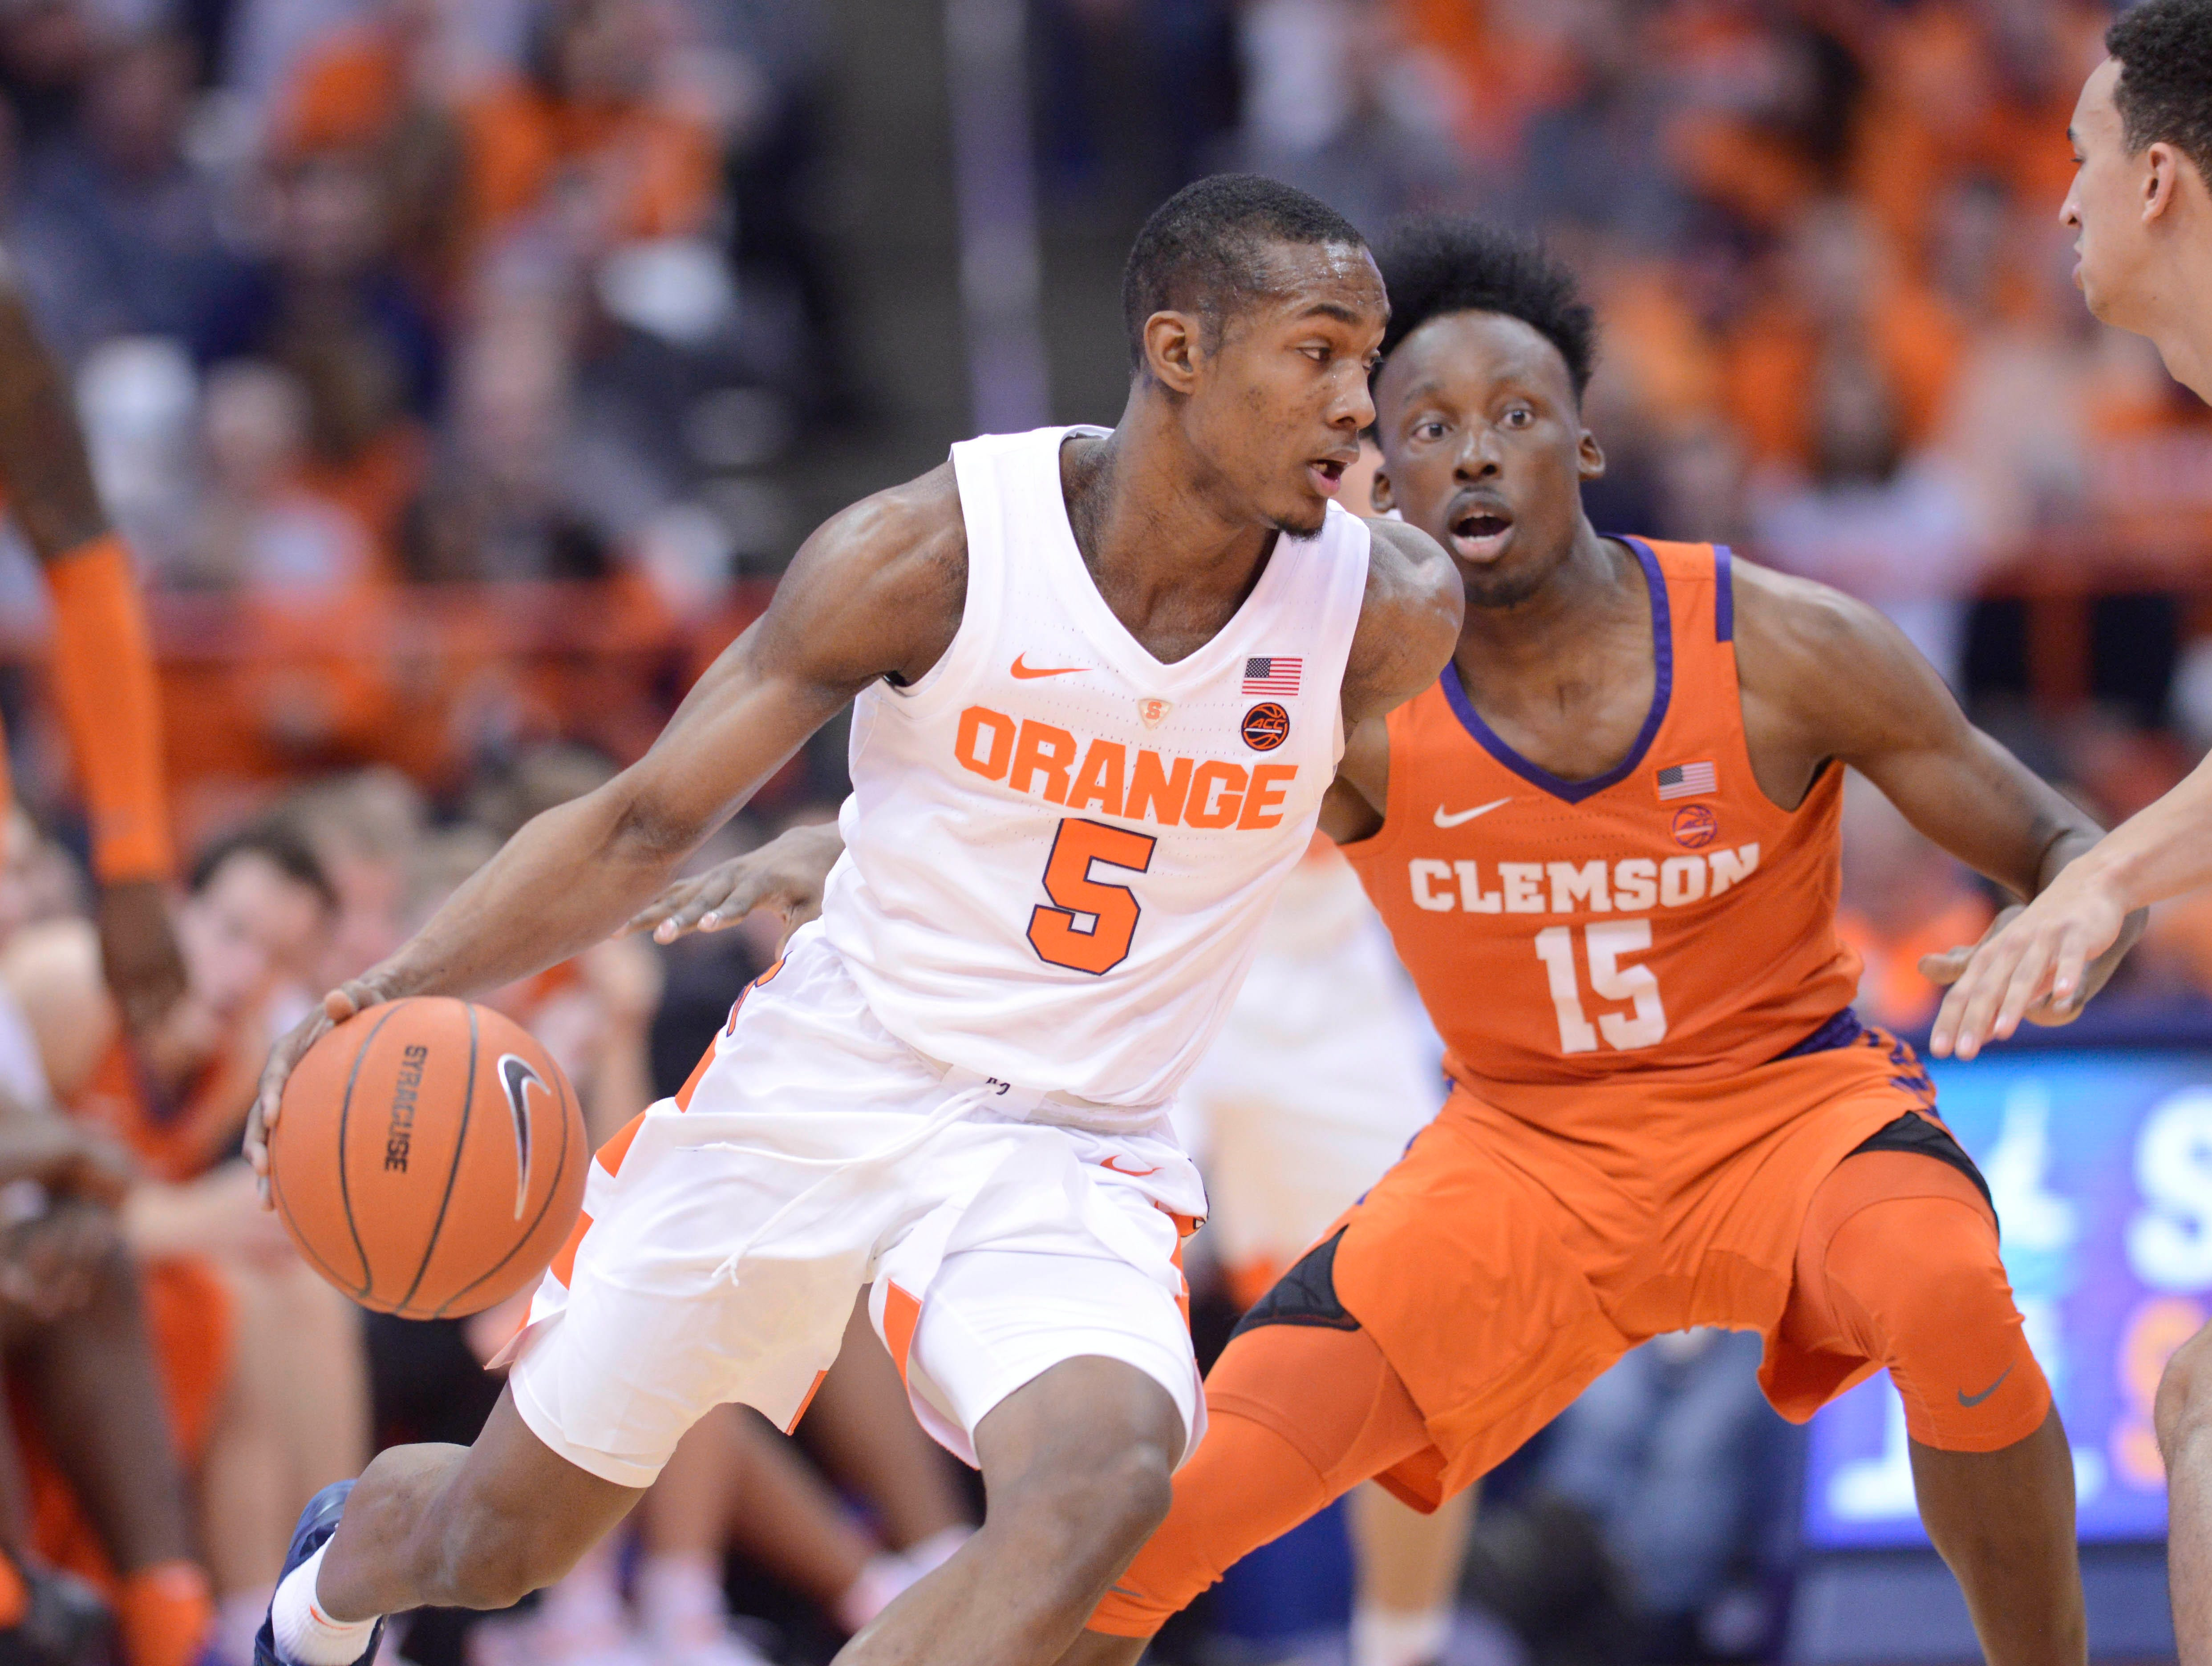 Jan 9, 2019; Syracuse, NY, USA; Syracuse Orange guard Jalen Carey (5) drives the ball against Clemson Tigers guard John Newman III (15) during the first half at the Carrier Dome.